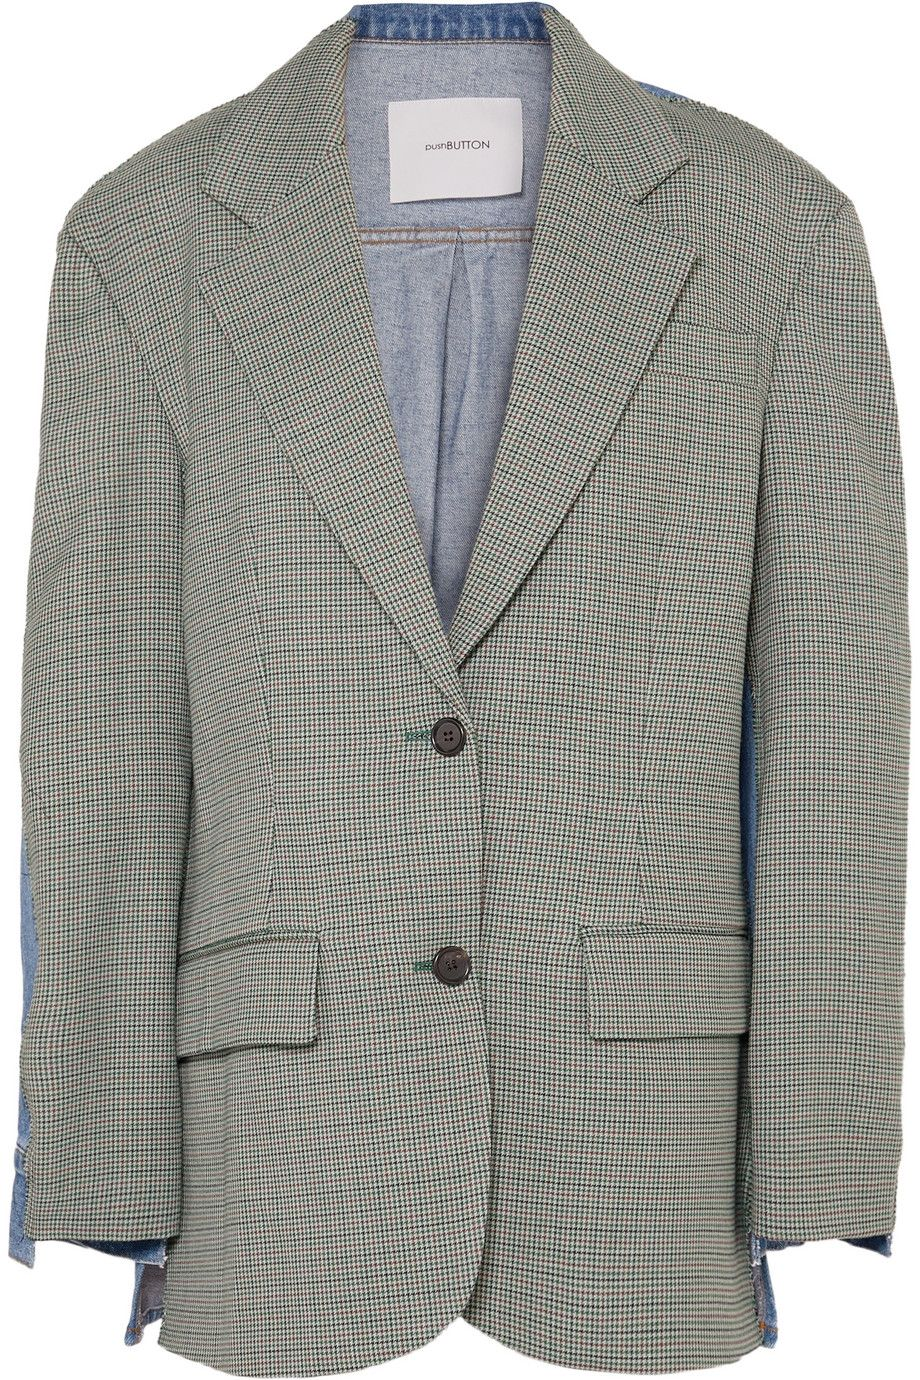 pushbutton-houndstooth-woven-blazer-with-denim-back